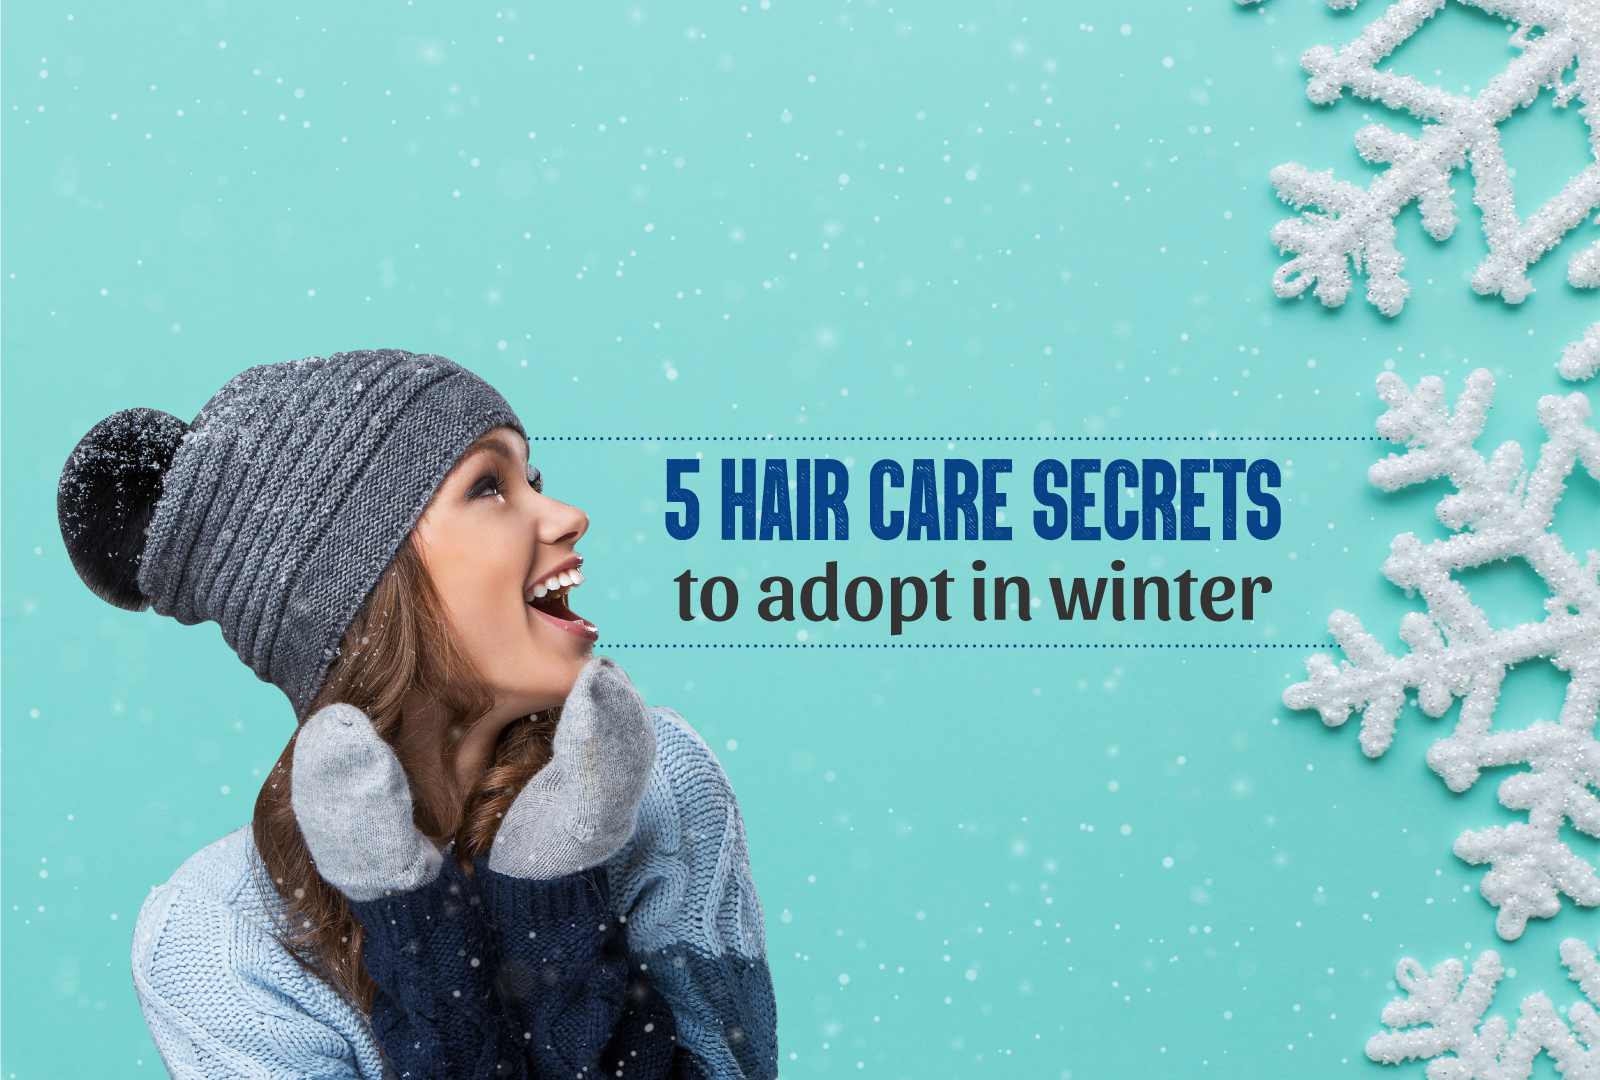 5 HAIR CARE SECRETS TO ADOPT IN WINTER